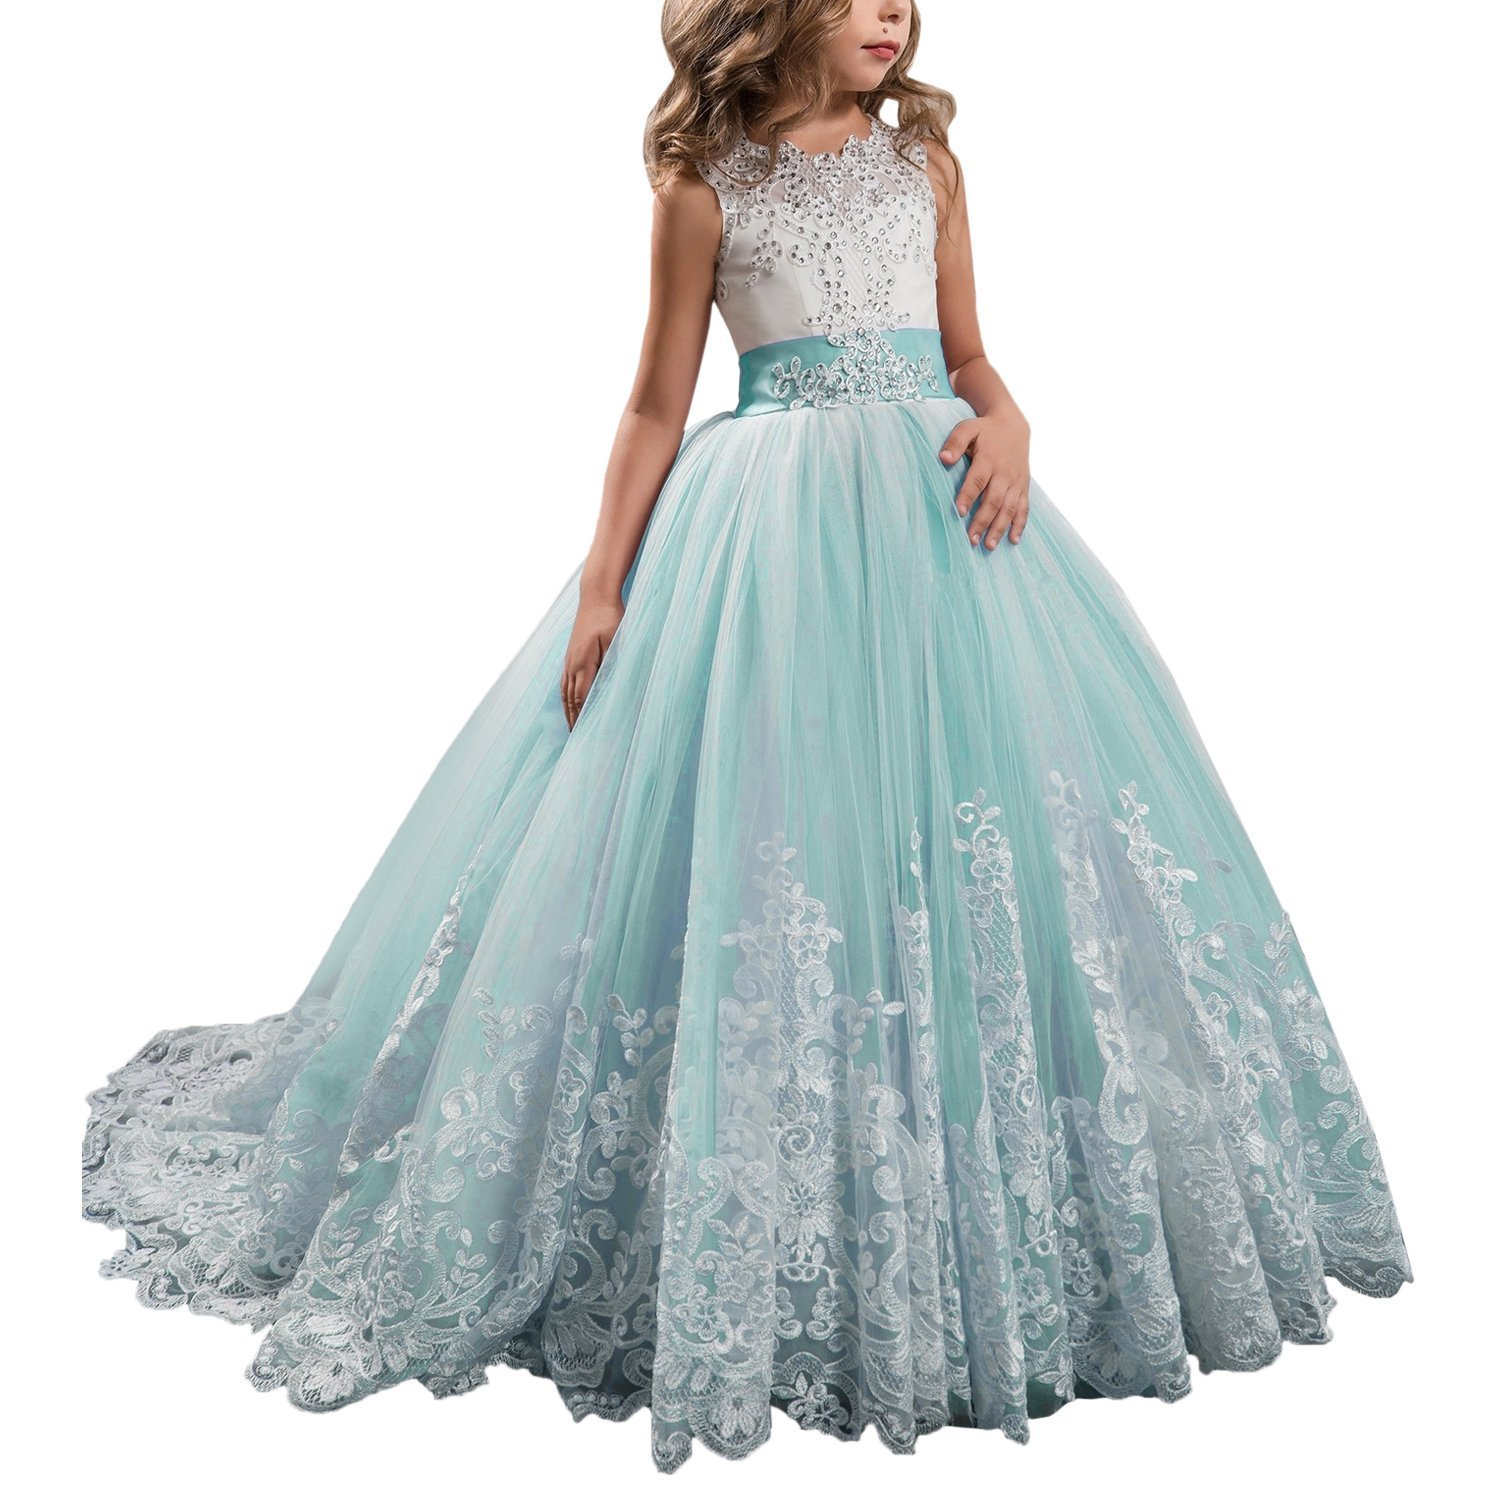 Amazon.com: Sharon Girls Princess Lilac Long Girls Pageant Dresses Kids Prom Puffy Tulle Ball Gown: Clothing